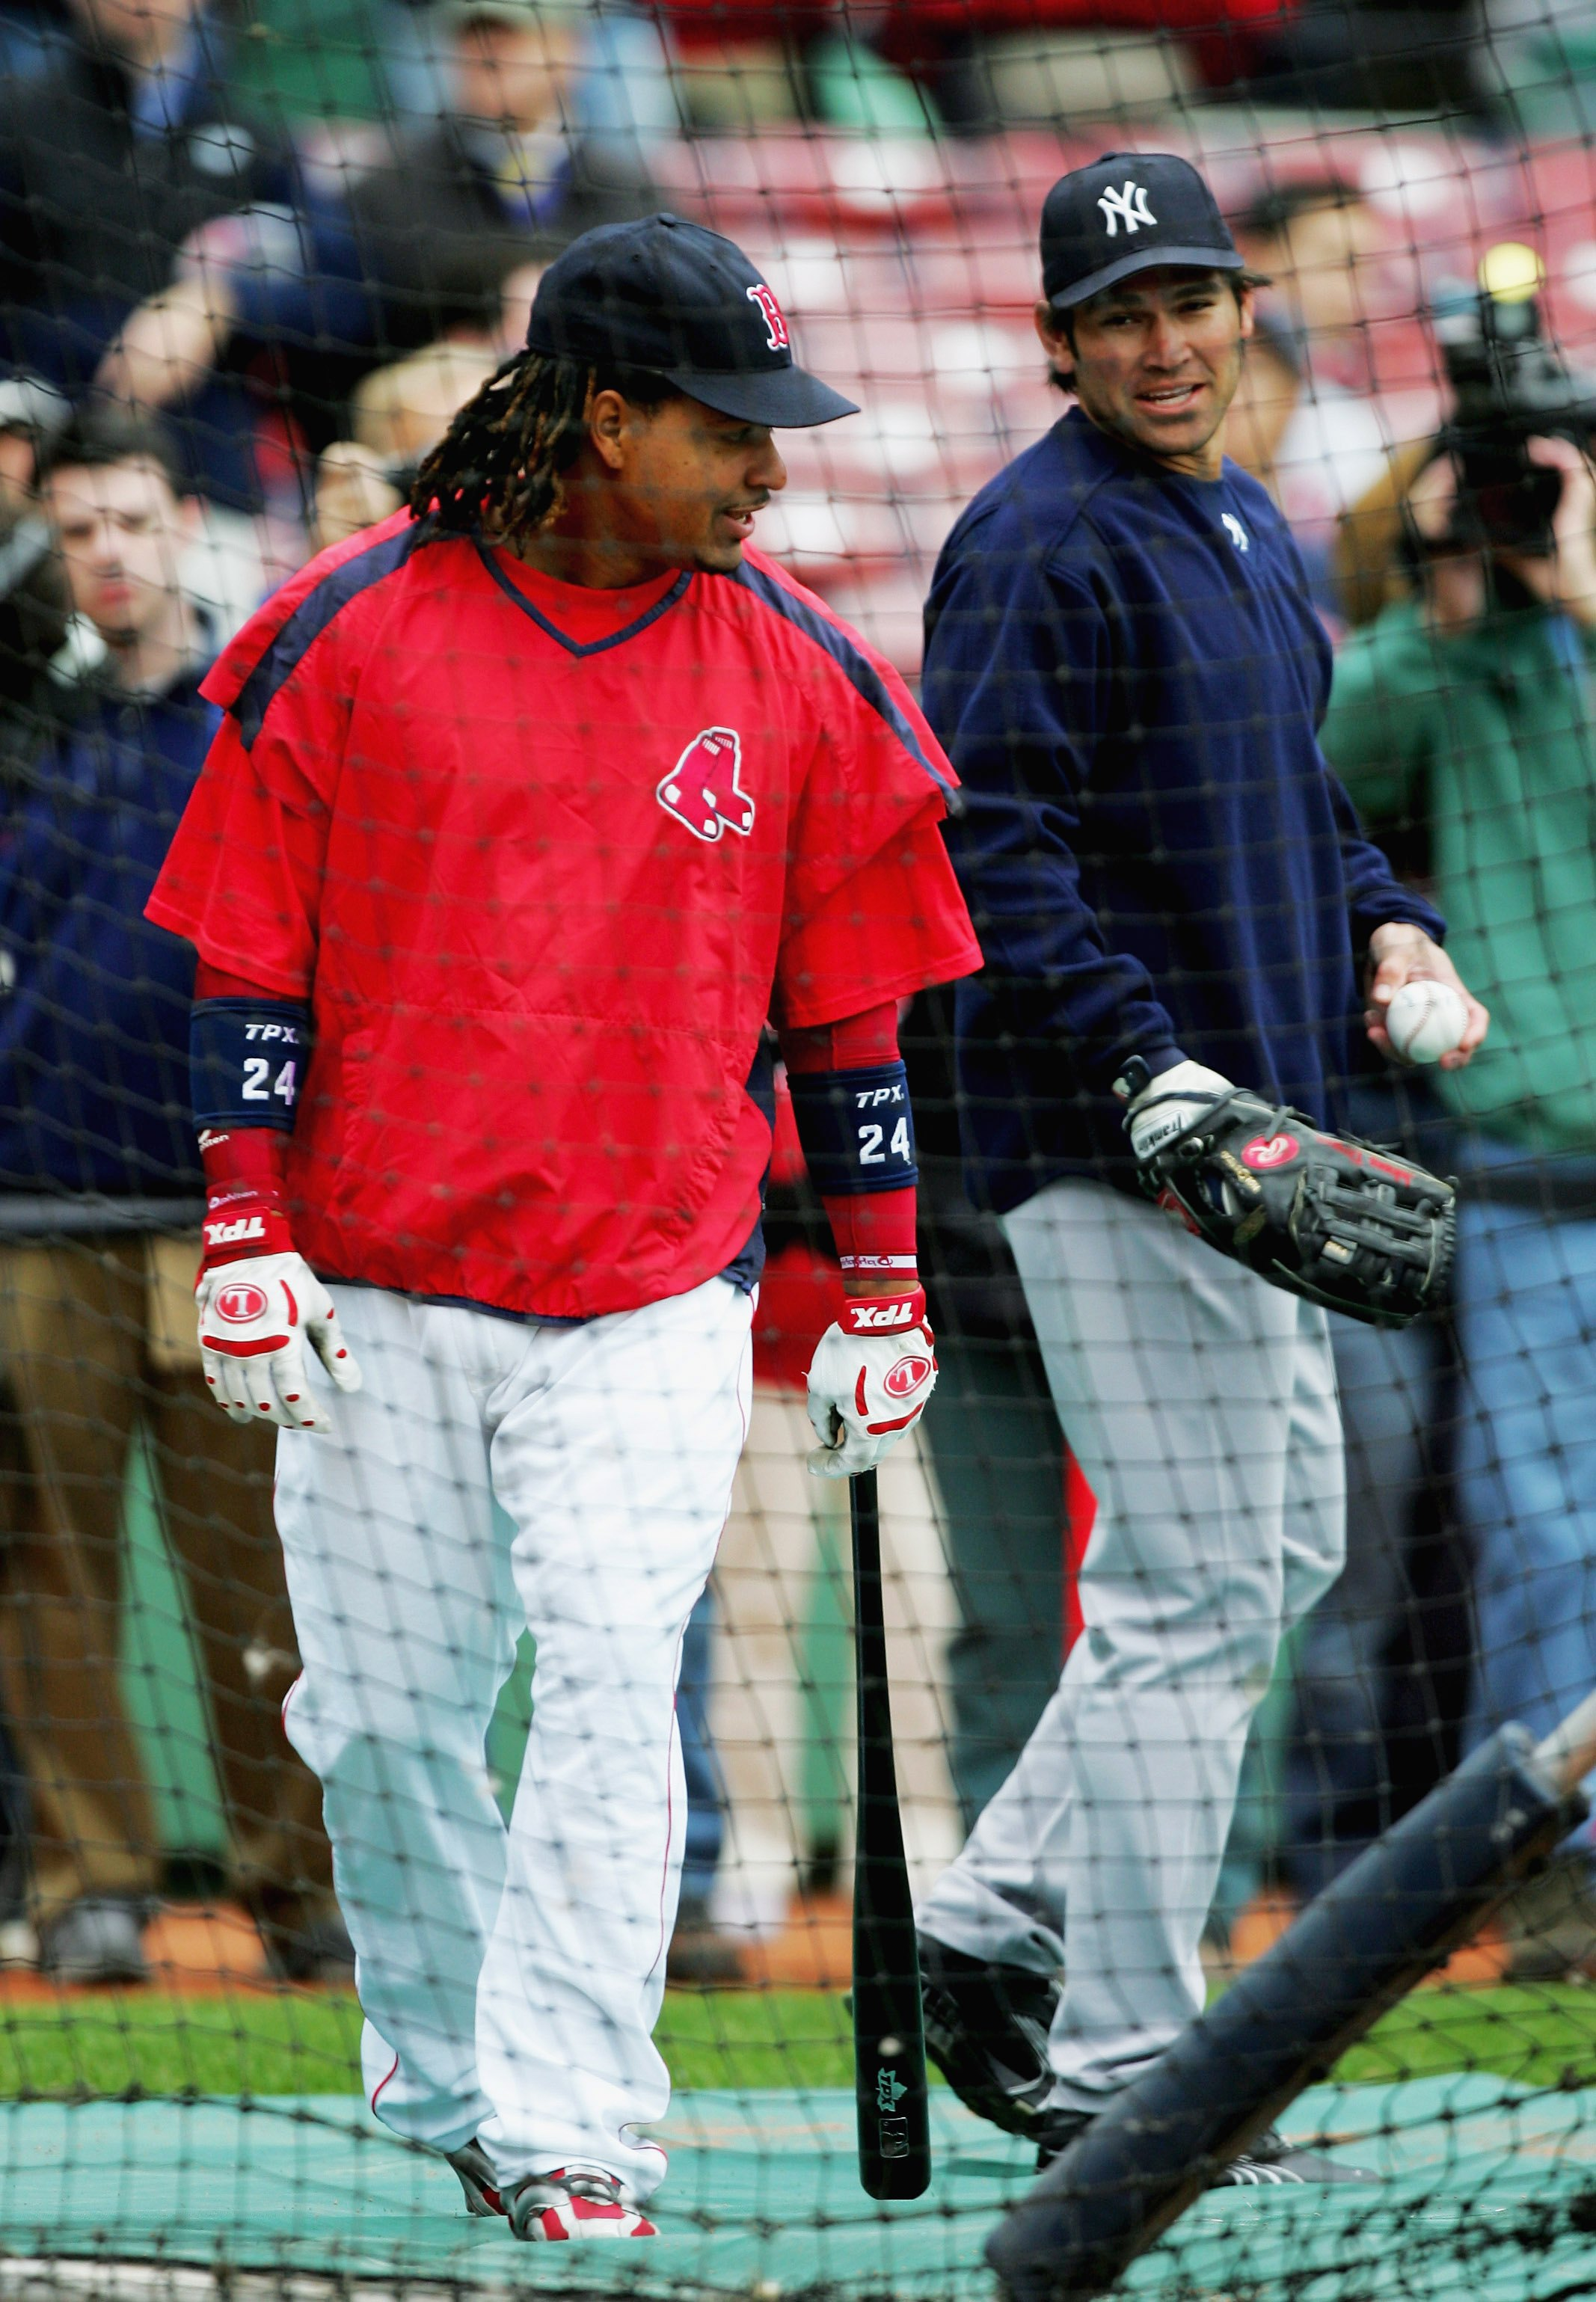 BOSTON - MAY 01:  Johnny Damon of the New York Yankees talks with former teammate Manny Ramirez of the Boston Red Sox at Fenway Park May 1, 2006 in Boston, Massachusetts.  (Photo by Ezra Shaw/Getty Images)